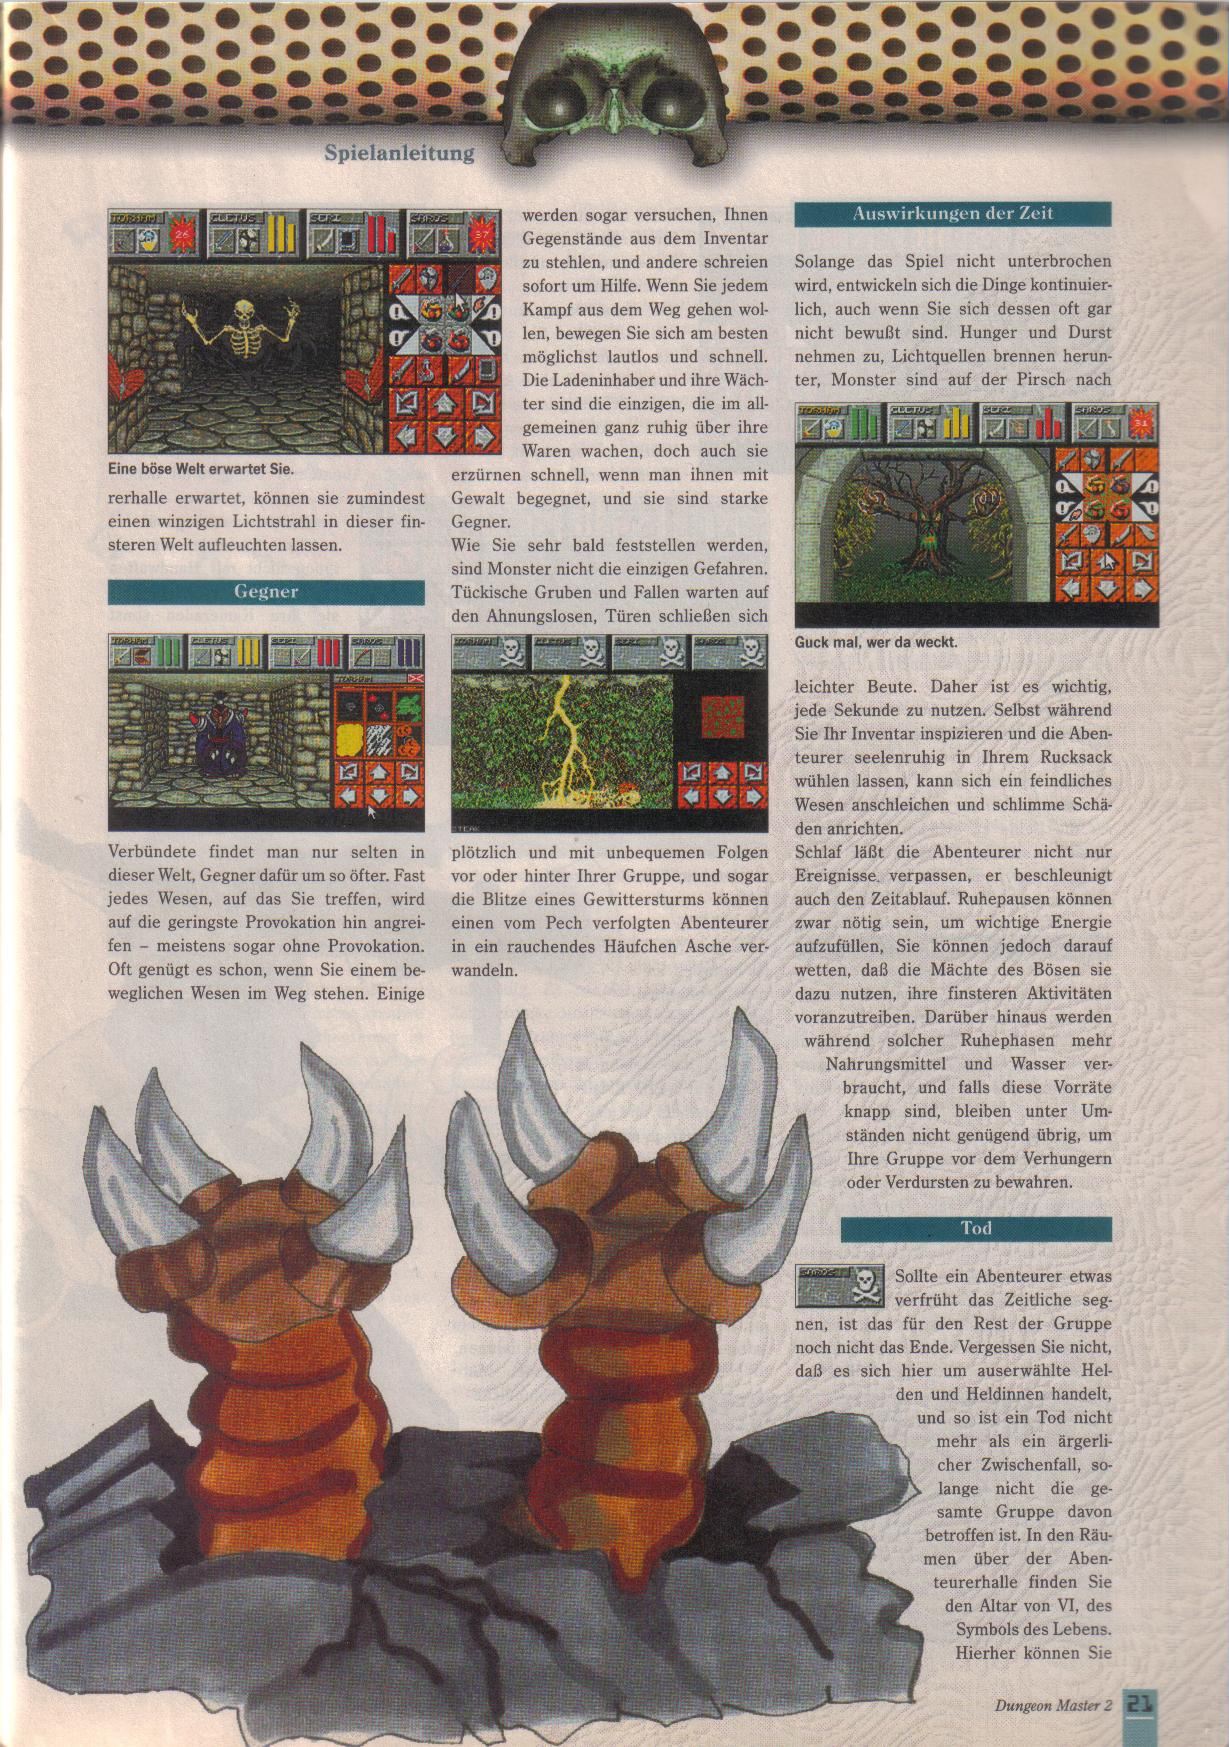 Dungeon Master II for PC (German, Best Seller Games) Page 21